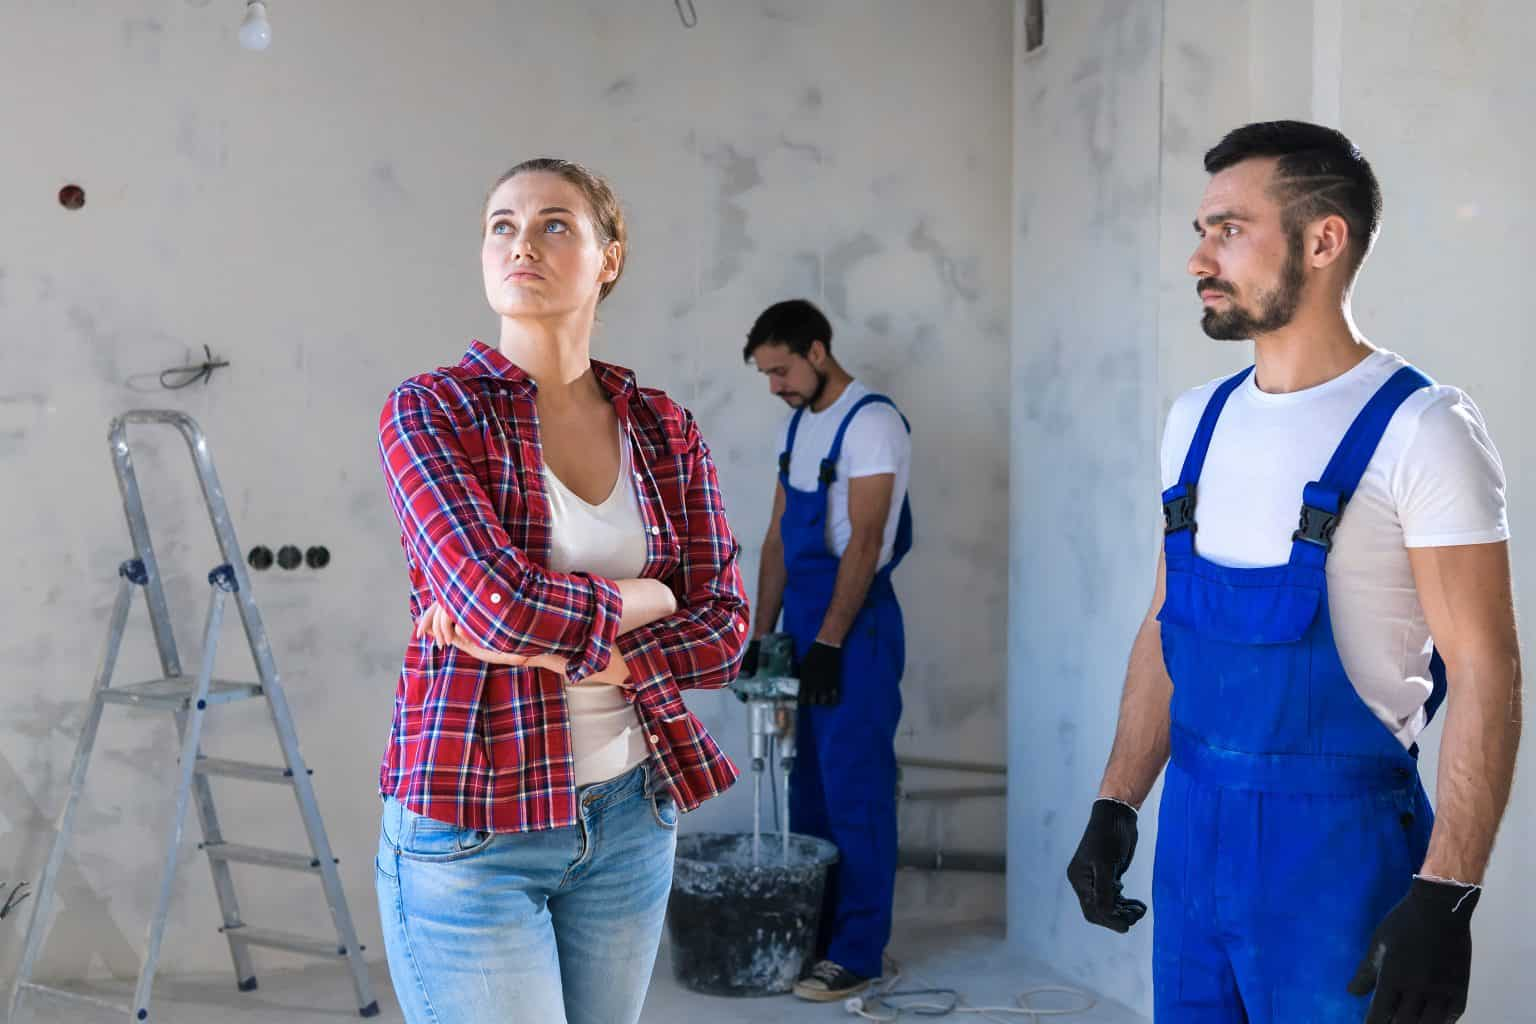 The builder shows the client the renovation of the apartment. She is unhappy and they are having a dispute over the works.